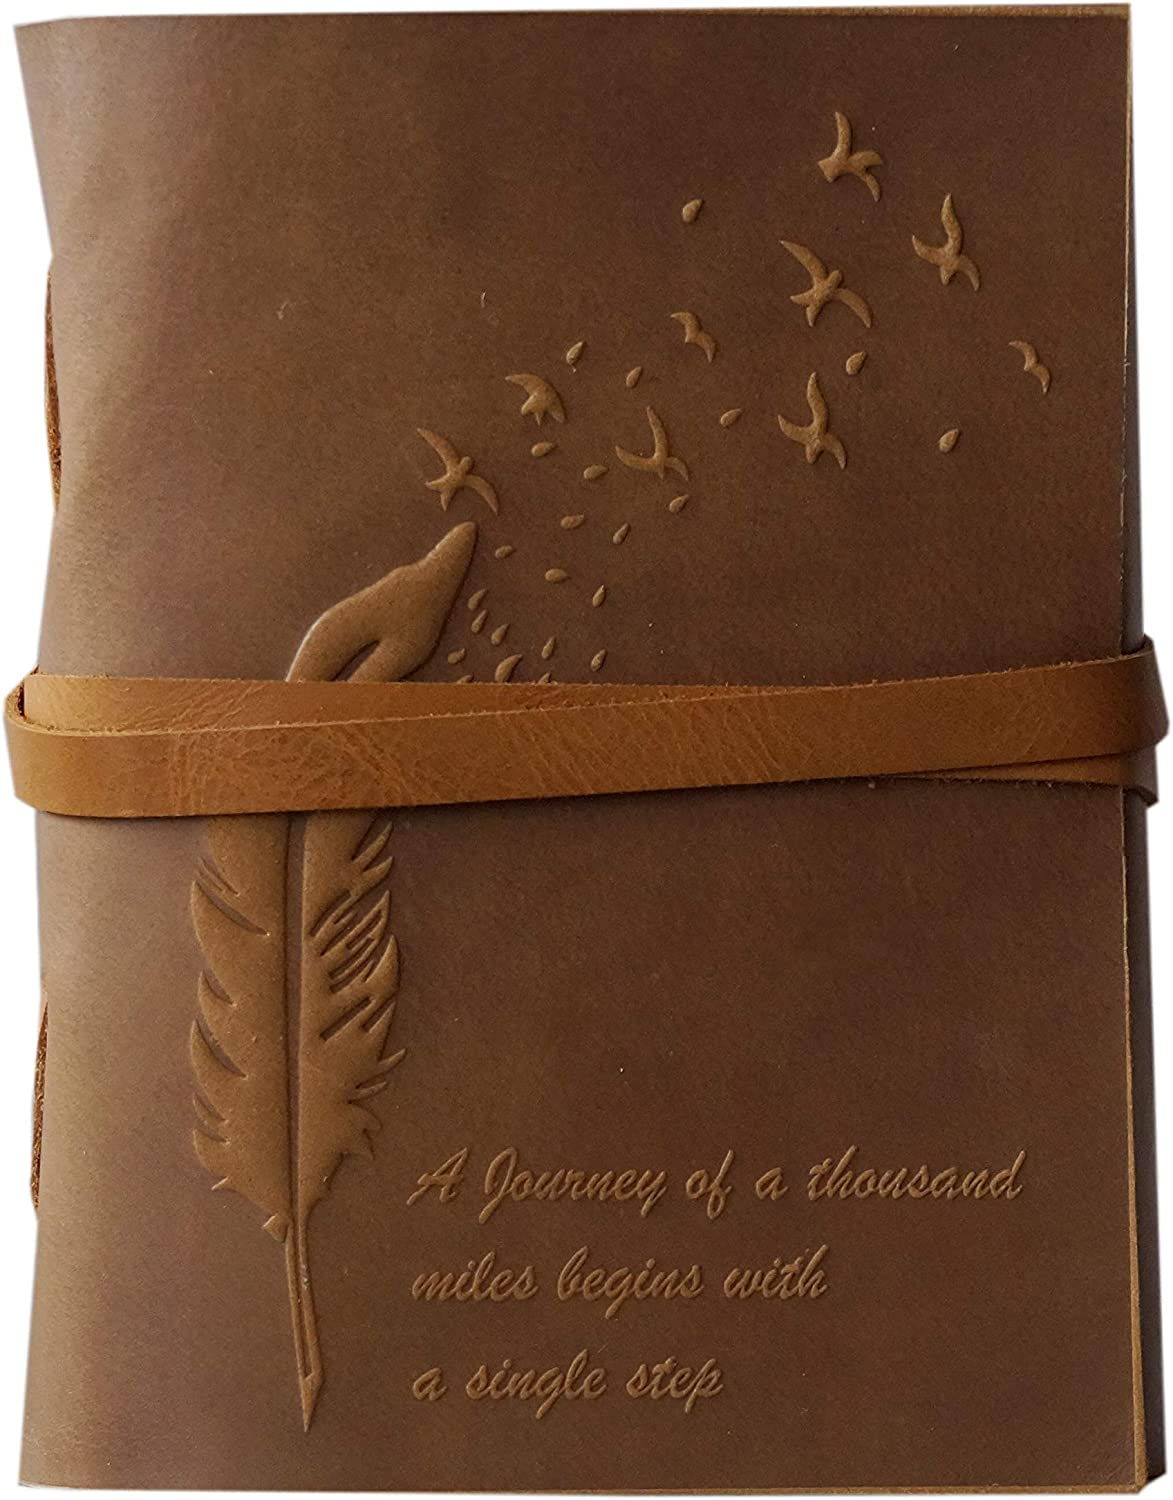 Soft Leather Journal Bound Handmade Feather Emerging Embossed Design Writing Diary Office Notebook Handbook Sketchbook 5 x 7 inches for Unisex